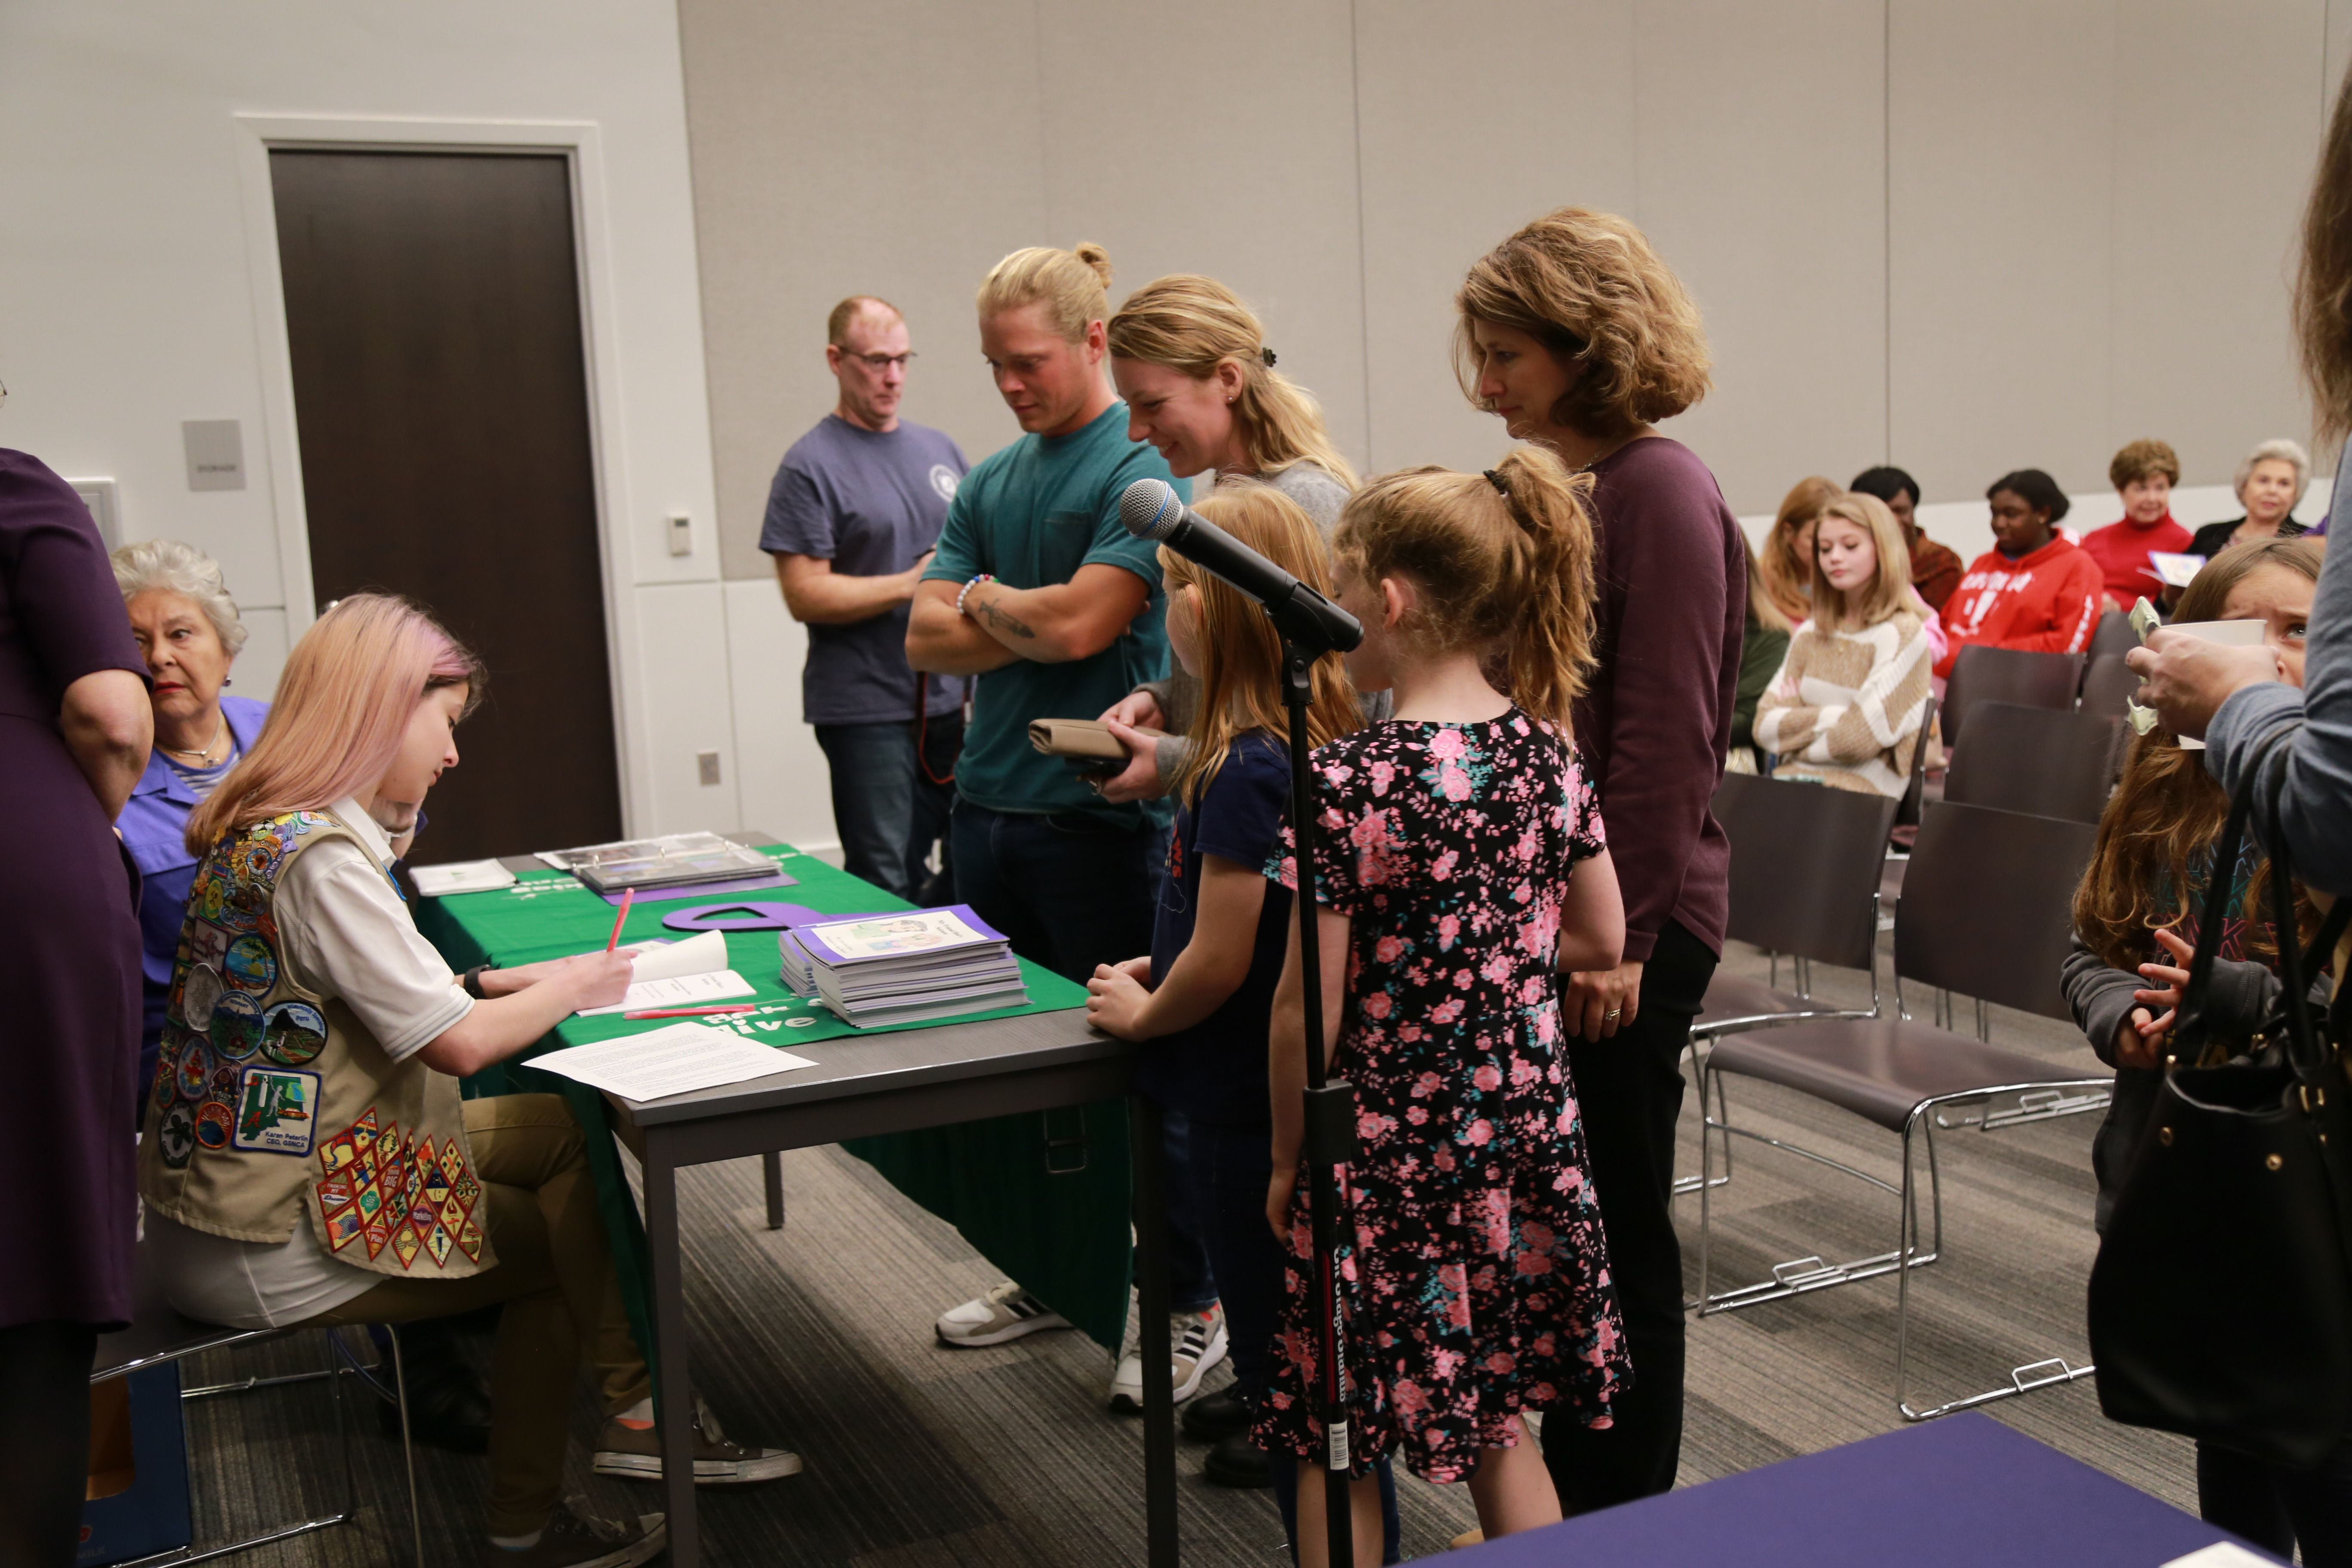 Trussville teen hosts book-signing for 'My Friend had a Seizure